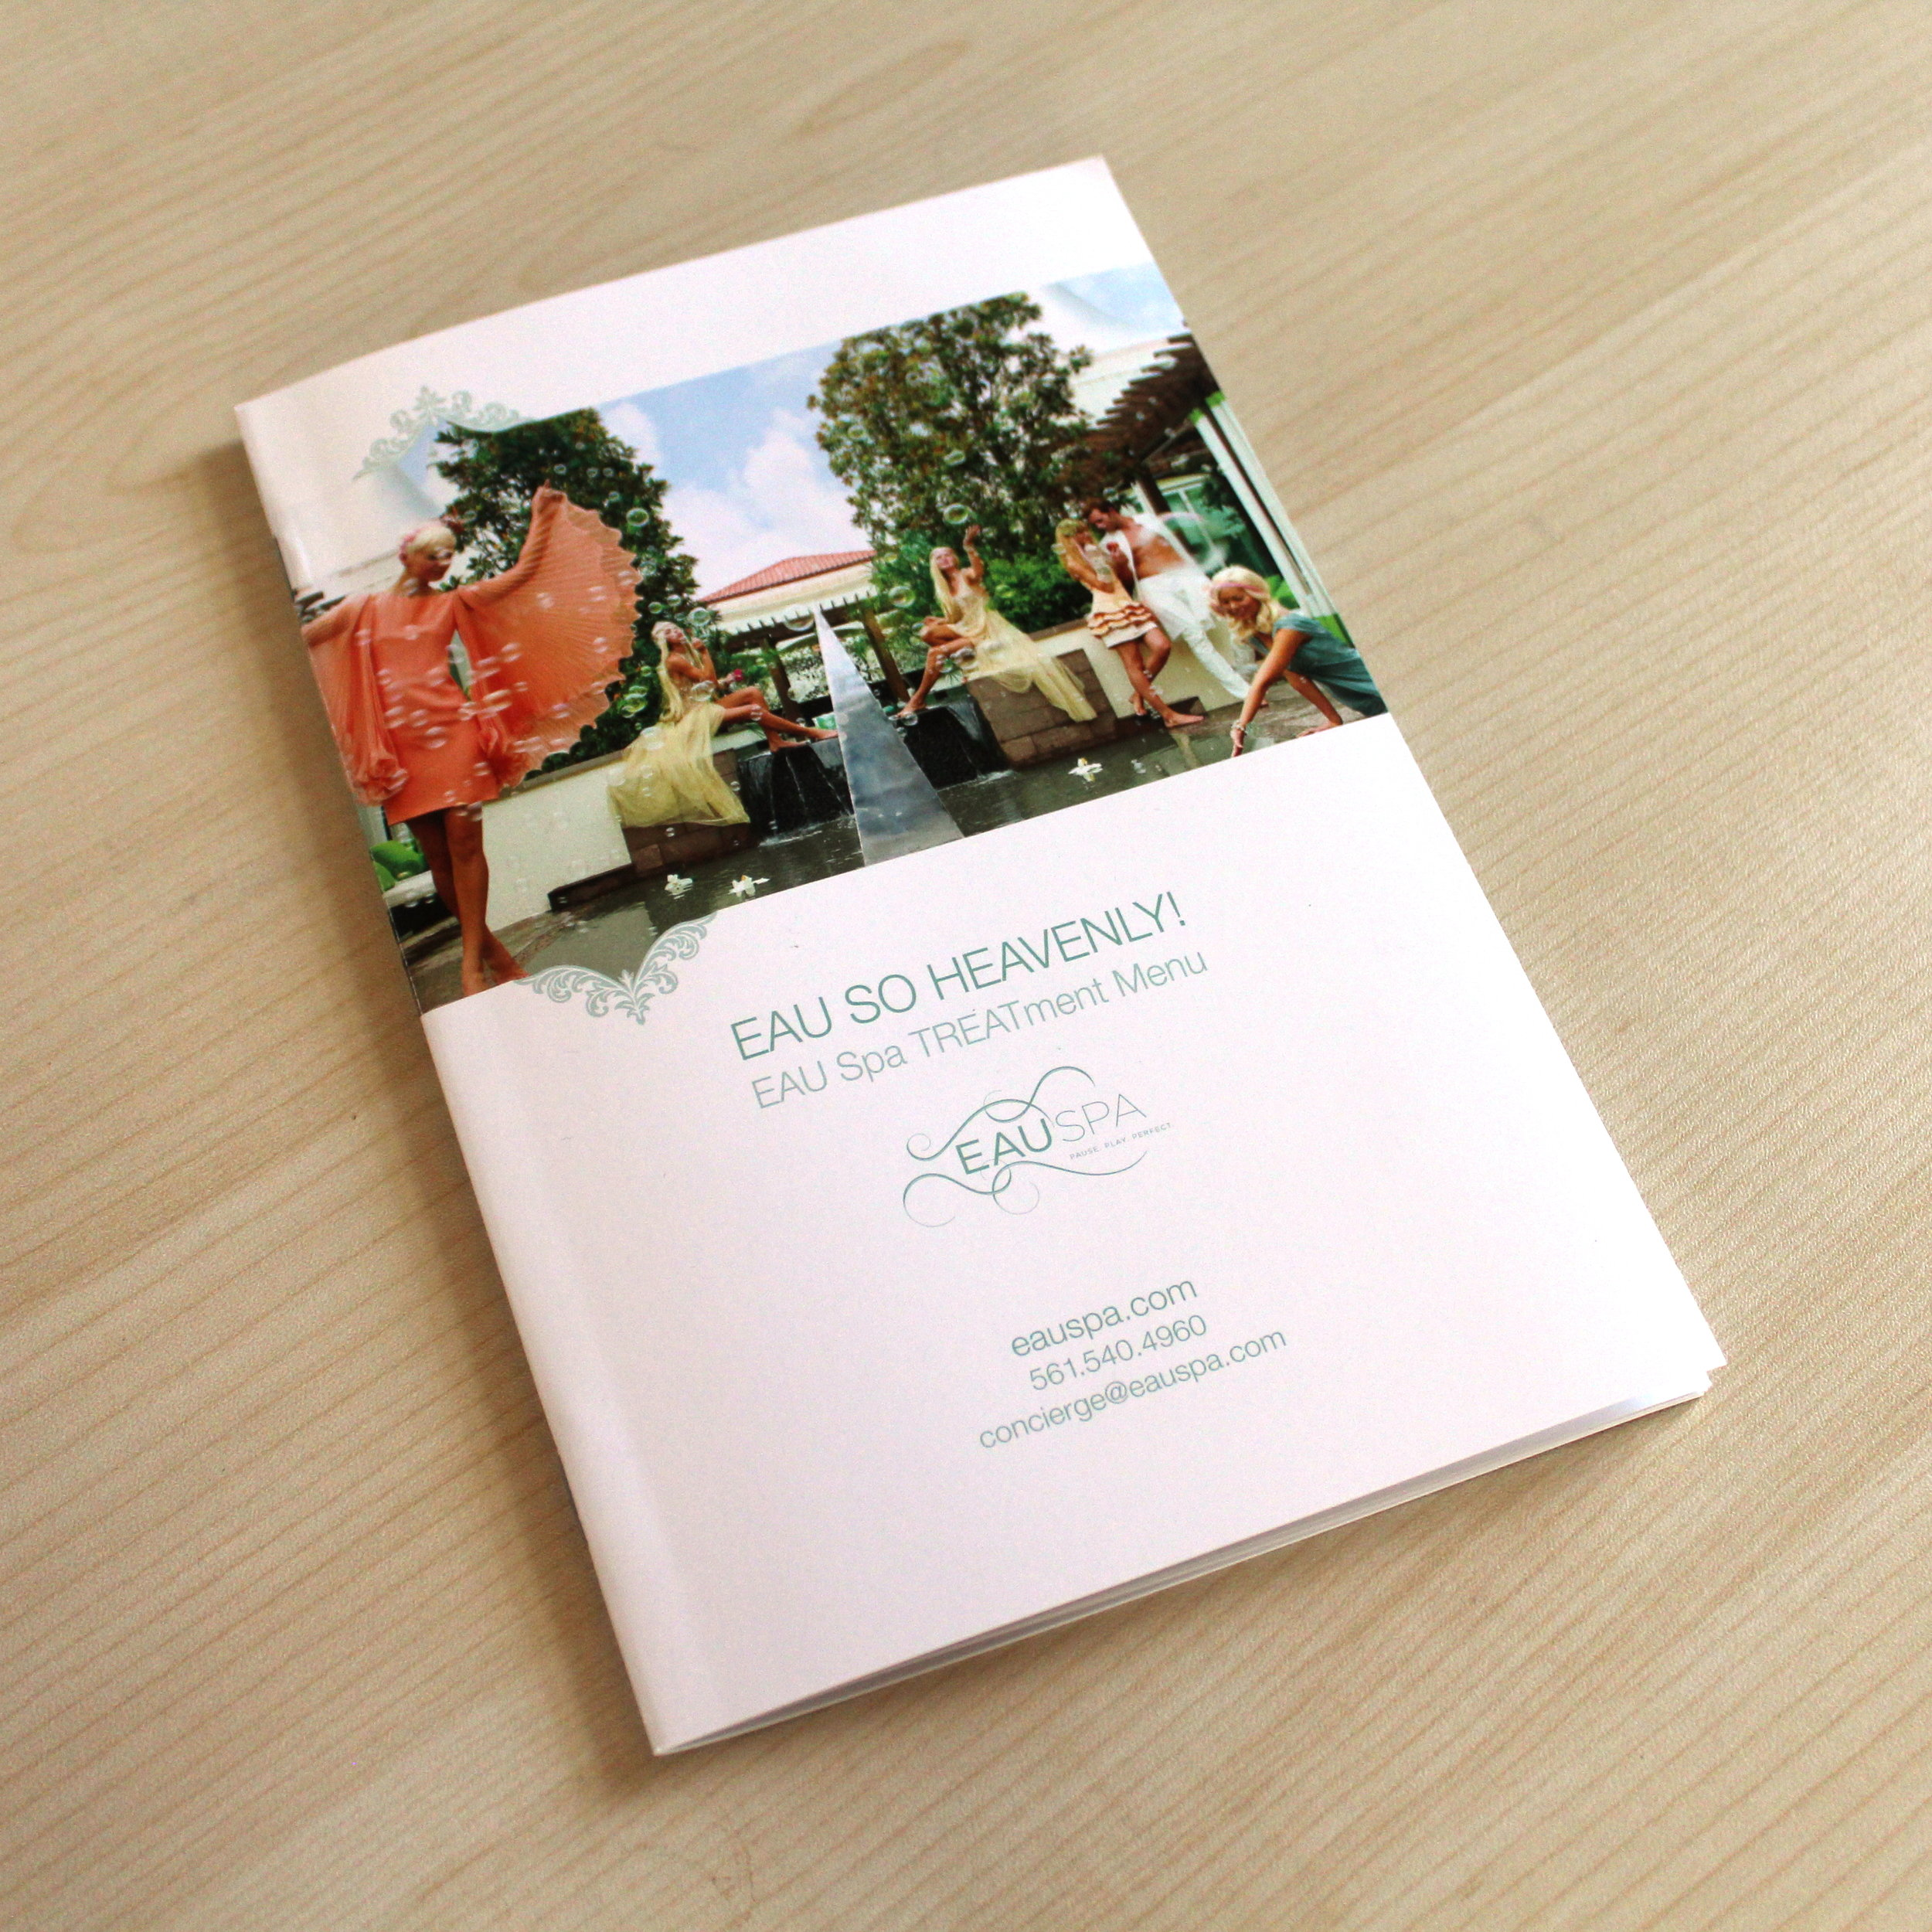 Eau Spa  Treatment Menu, Design & Printing, Photographed in House